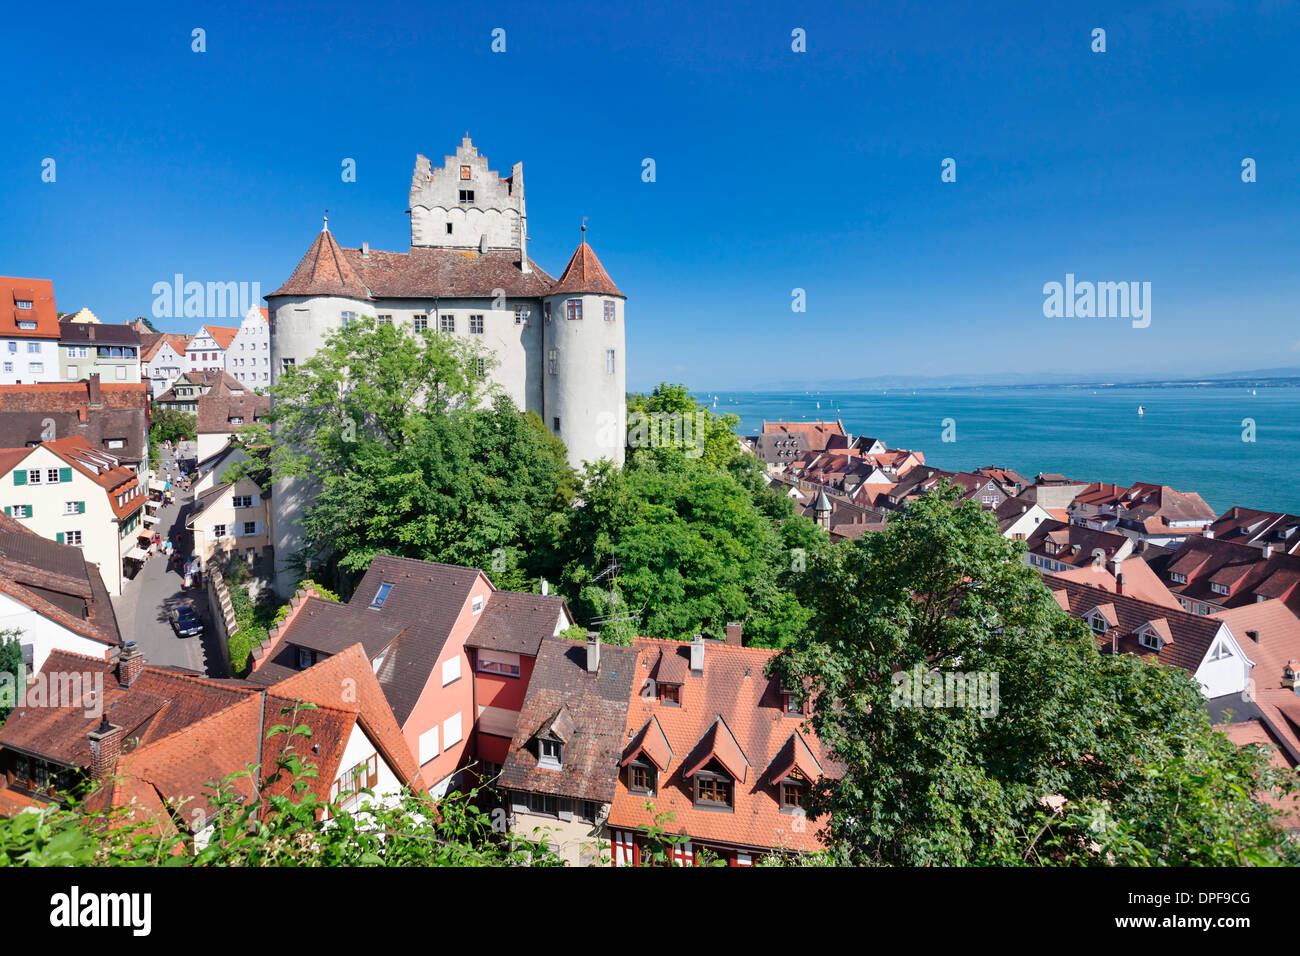 Old Castle, Meersburg, Lake Constance (Bodensee), Baden Wurttemberg, Germany, Europe Stock Photo